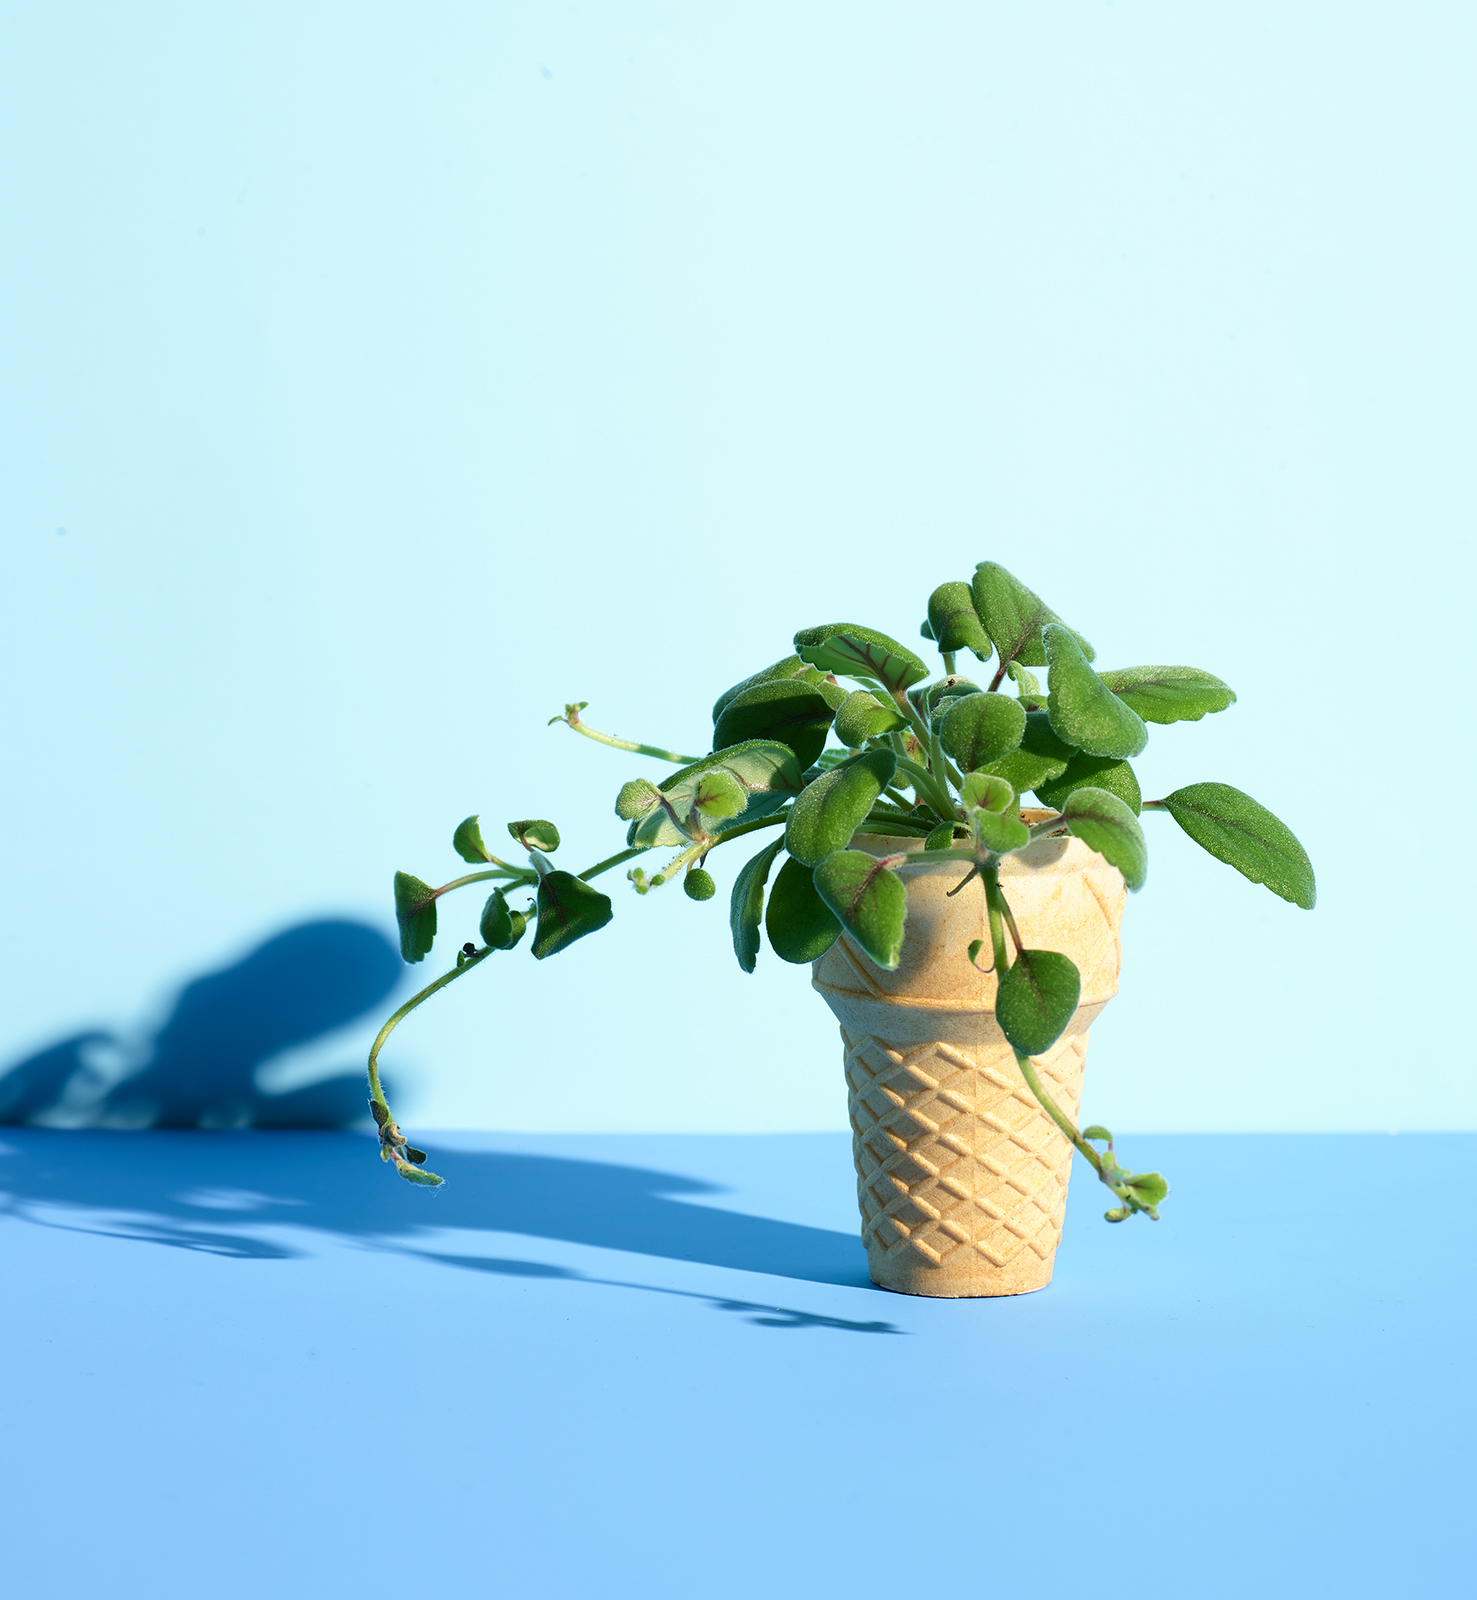 Ice Cream Cone as Seed Starter